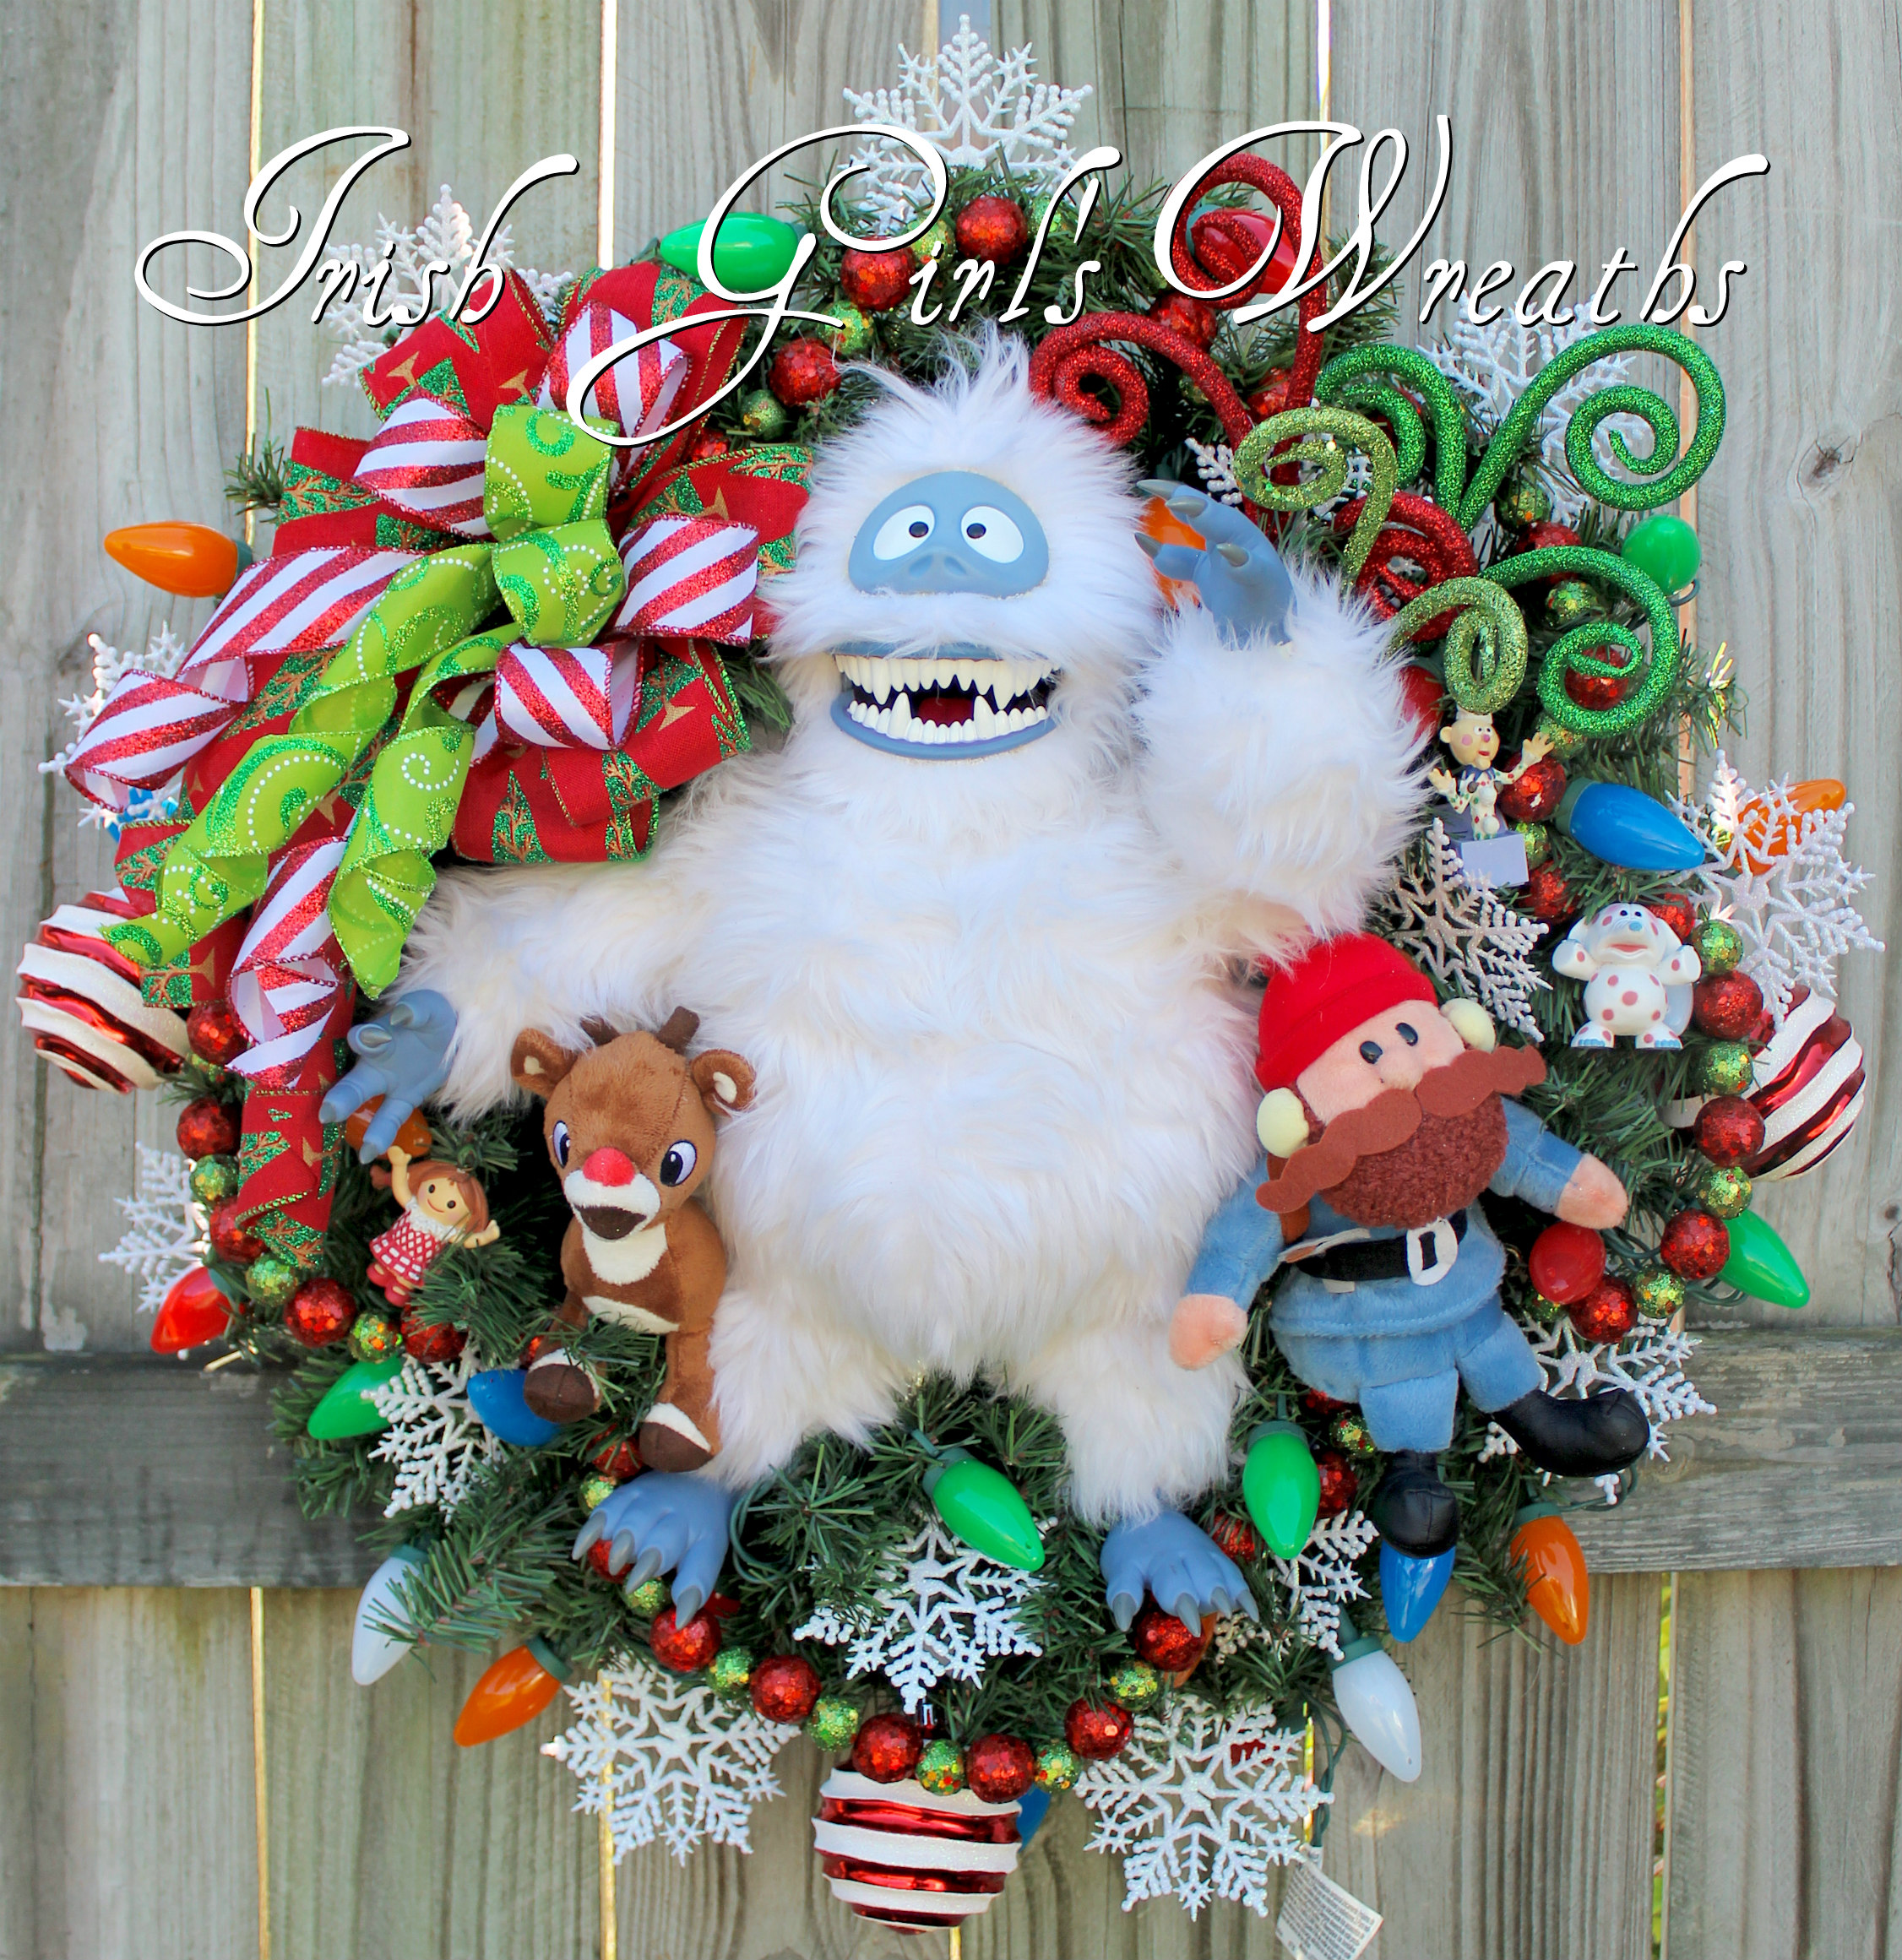 Bumble Snowmonster and Yukon Cornelius Christmas Wreath, PreLit, Rudolph, Abominable, Misfit Toys Spotted Elephant, RagDoll, Charlie in Box